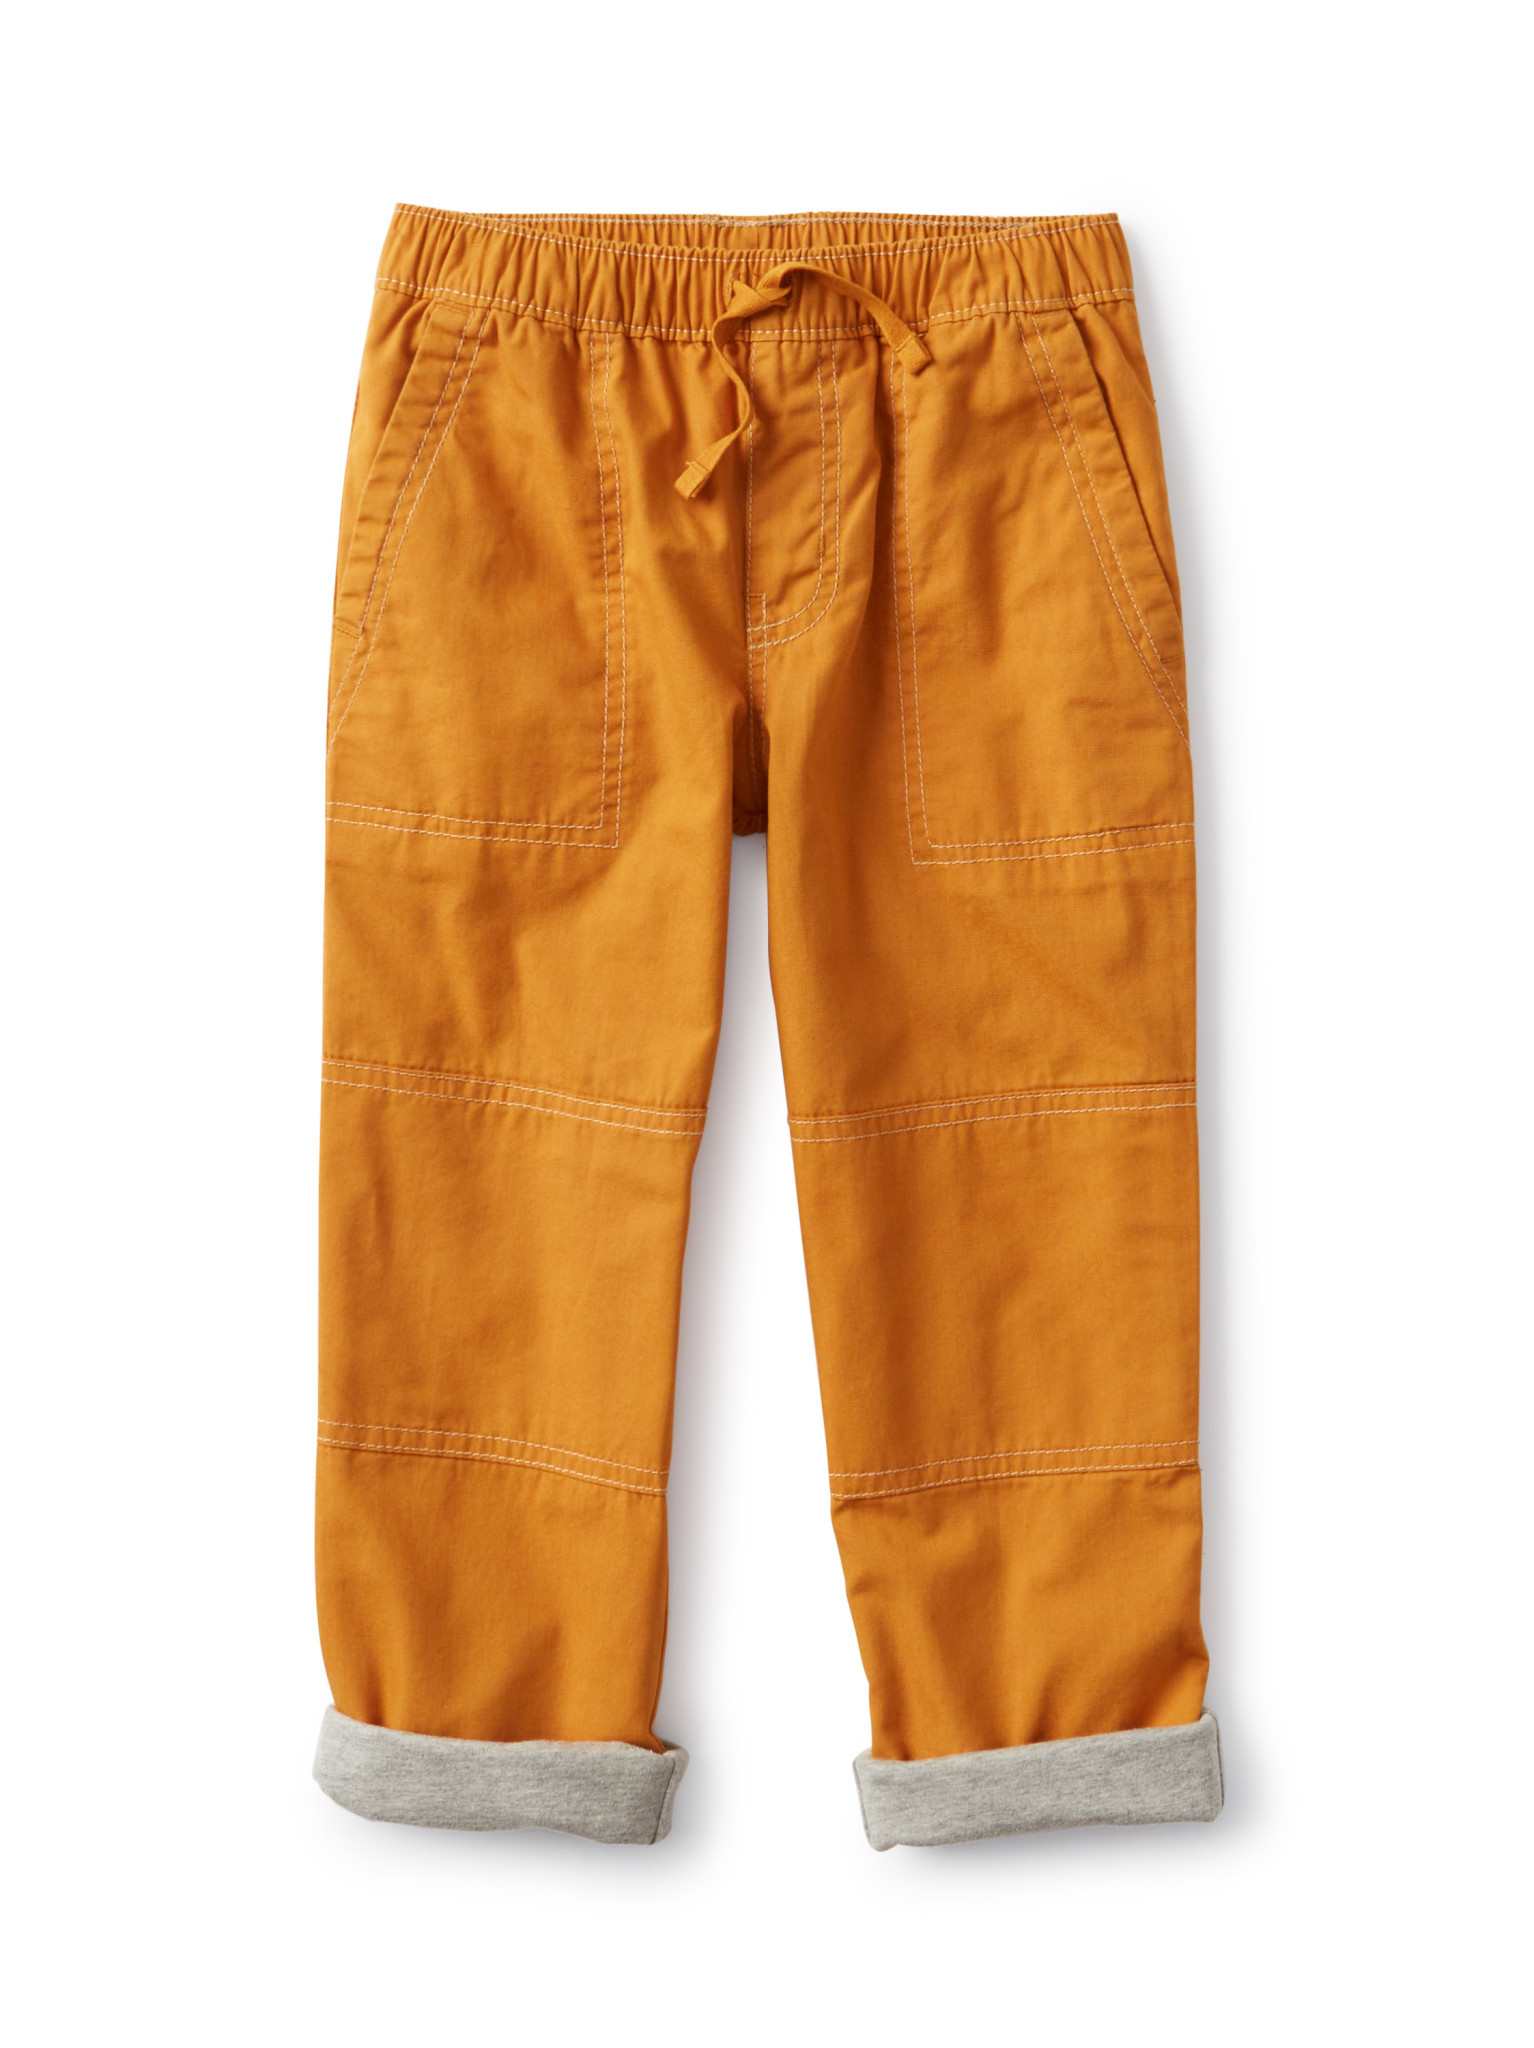 Tea Collection Cozy Jersey Lined Pant - Nugget